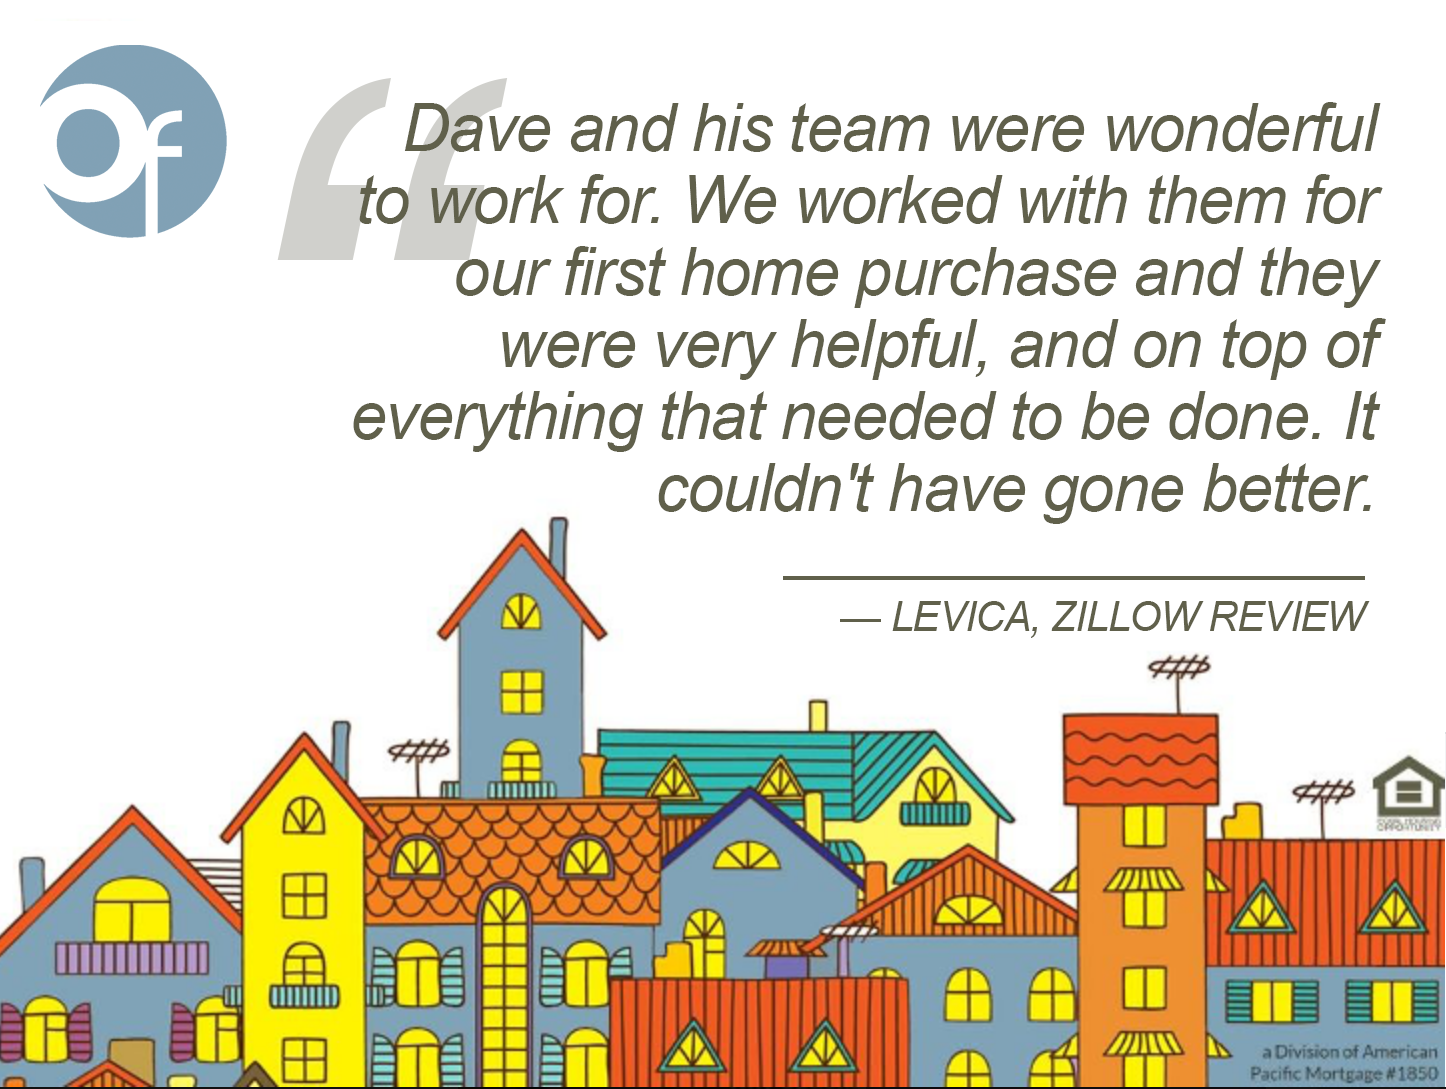 Dave and his team were wonderful to work for. We worked with them for our first home purchase and they were very helpful, and on top of everything that needed to be done. It couldn't have gone better.